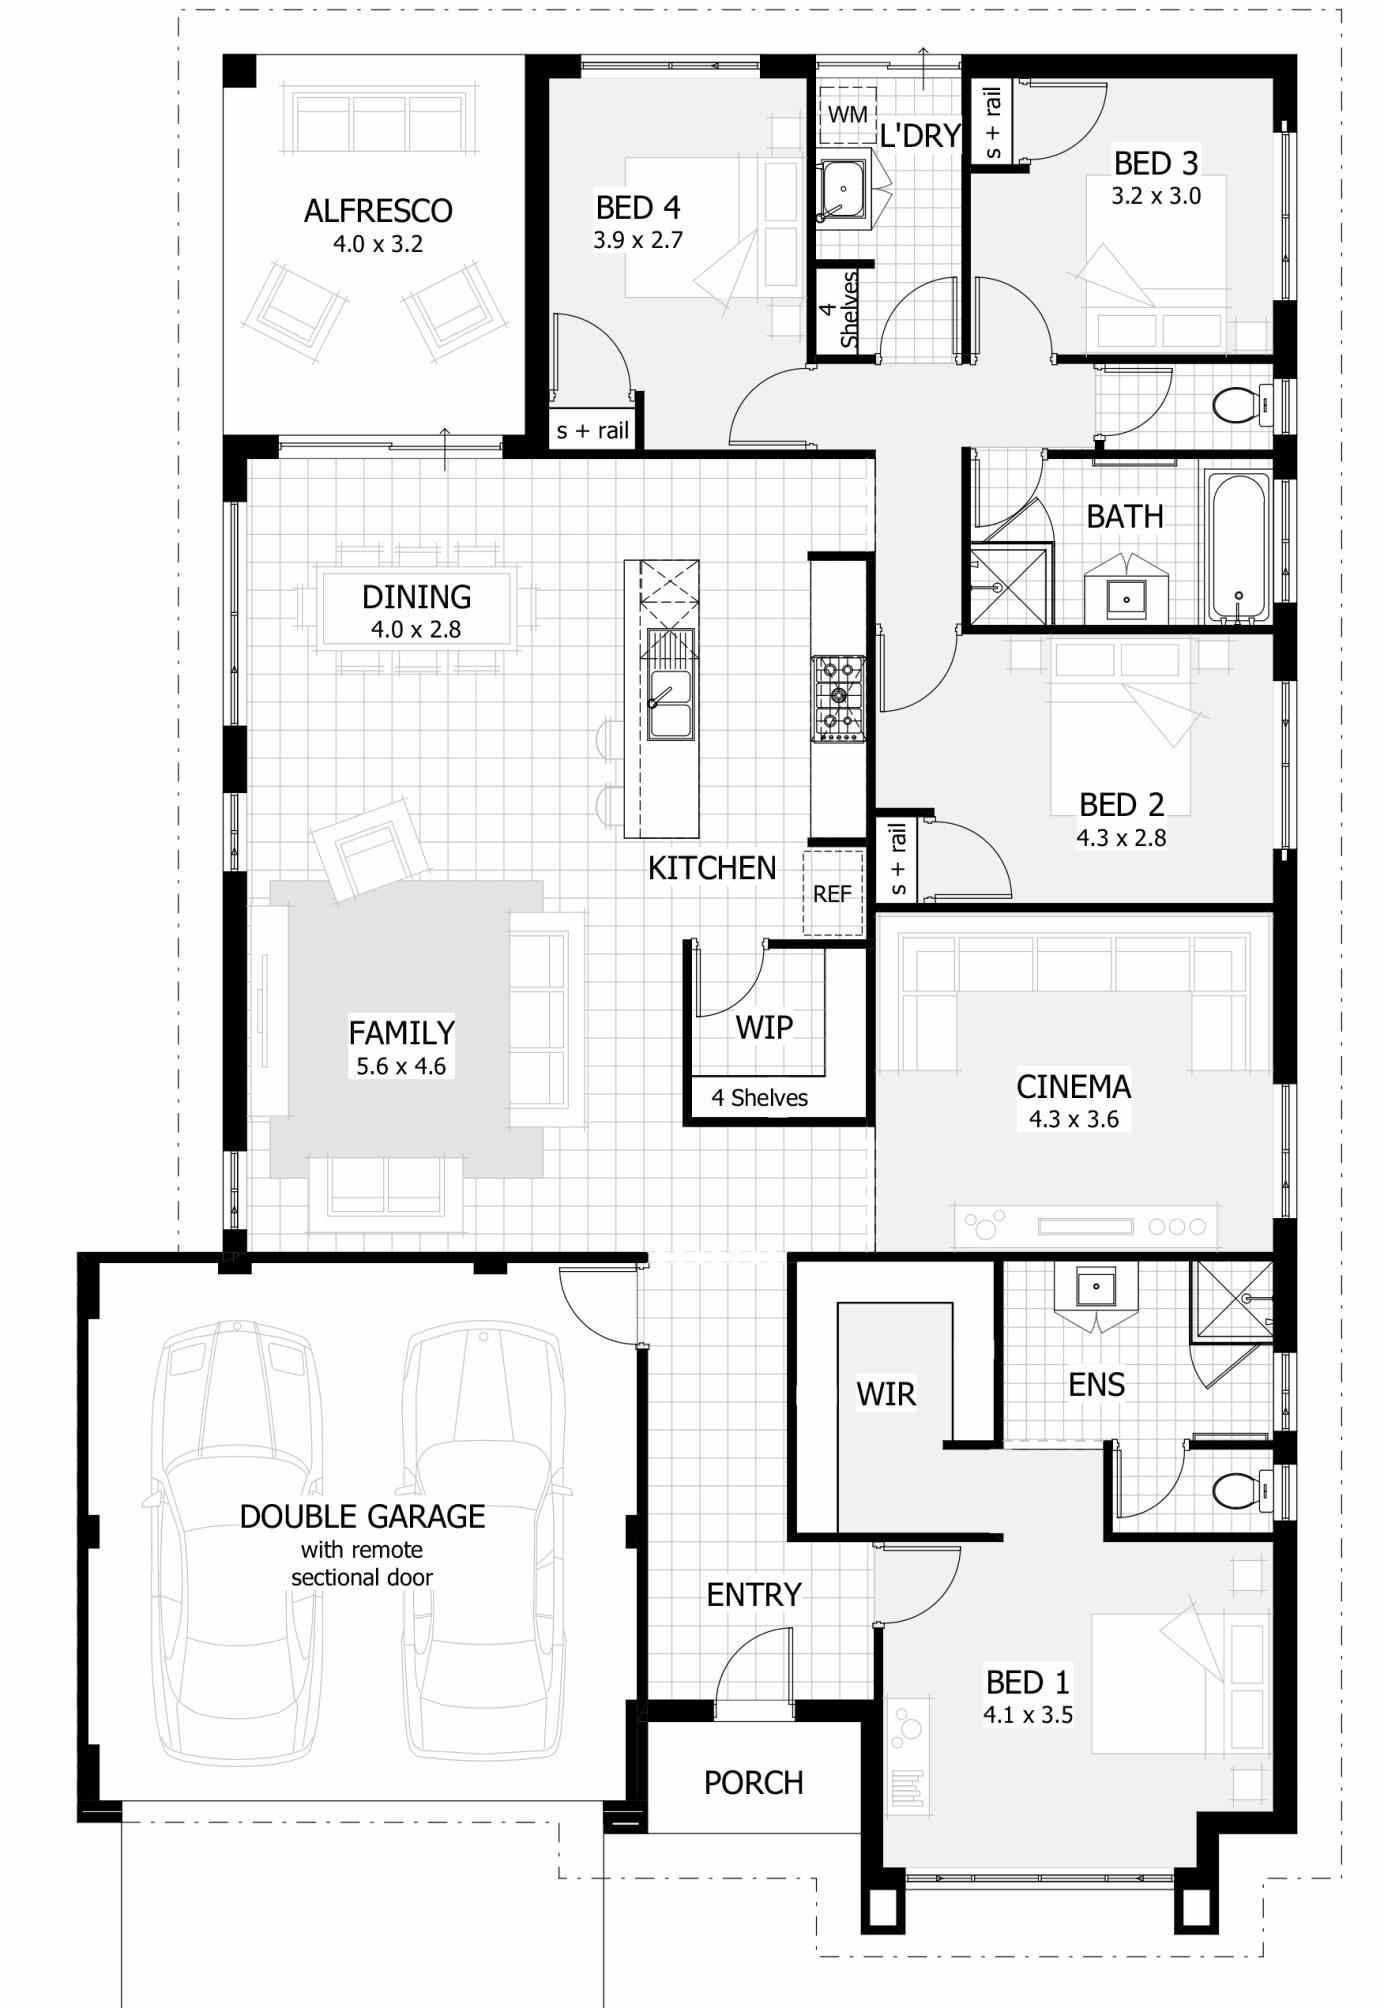 Best House Planning software Beautiful Lovely Single Story 4 Bedroom Farmhouse Plans